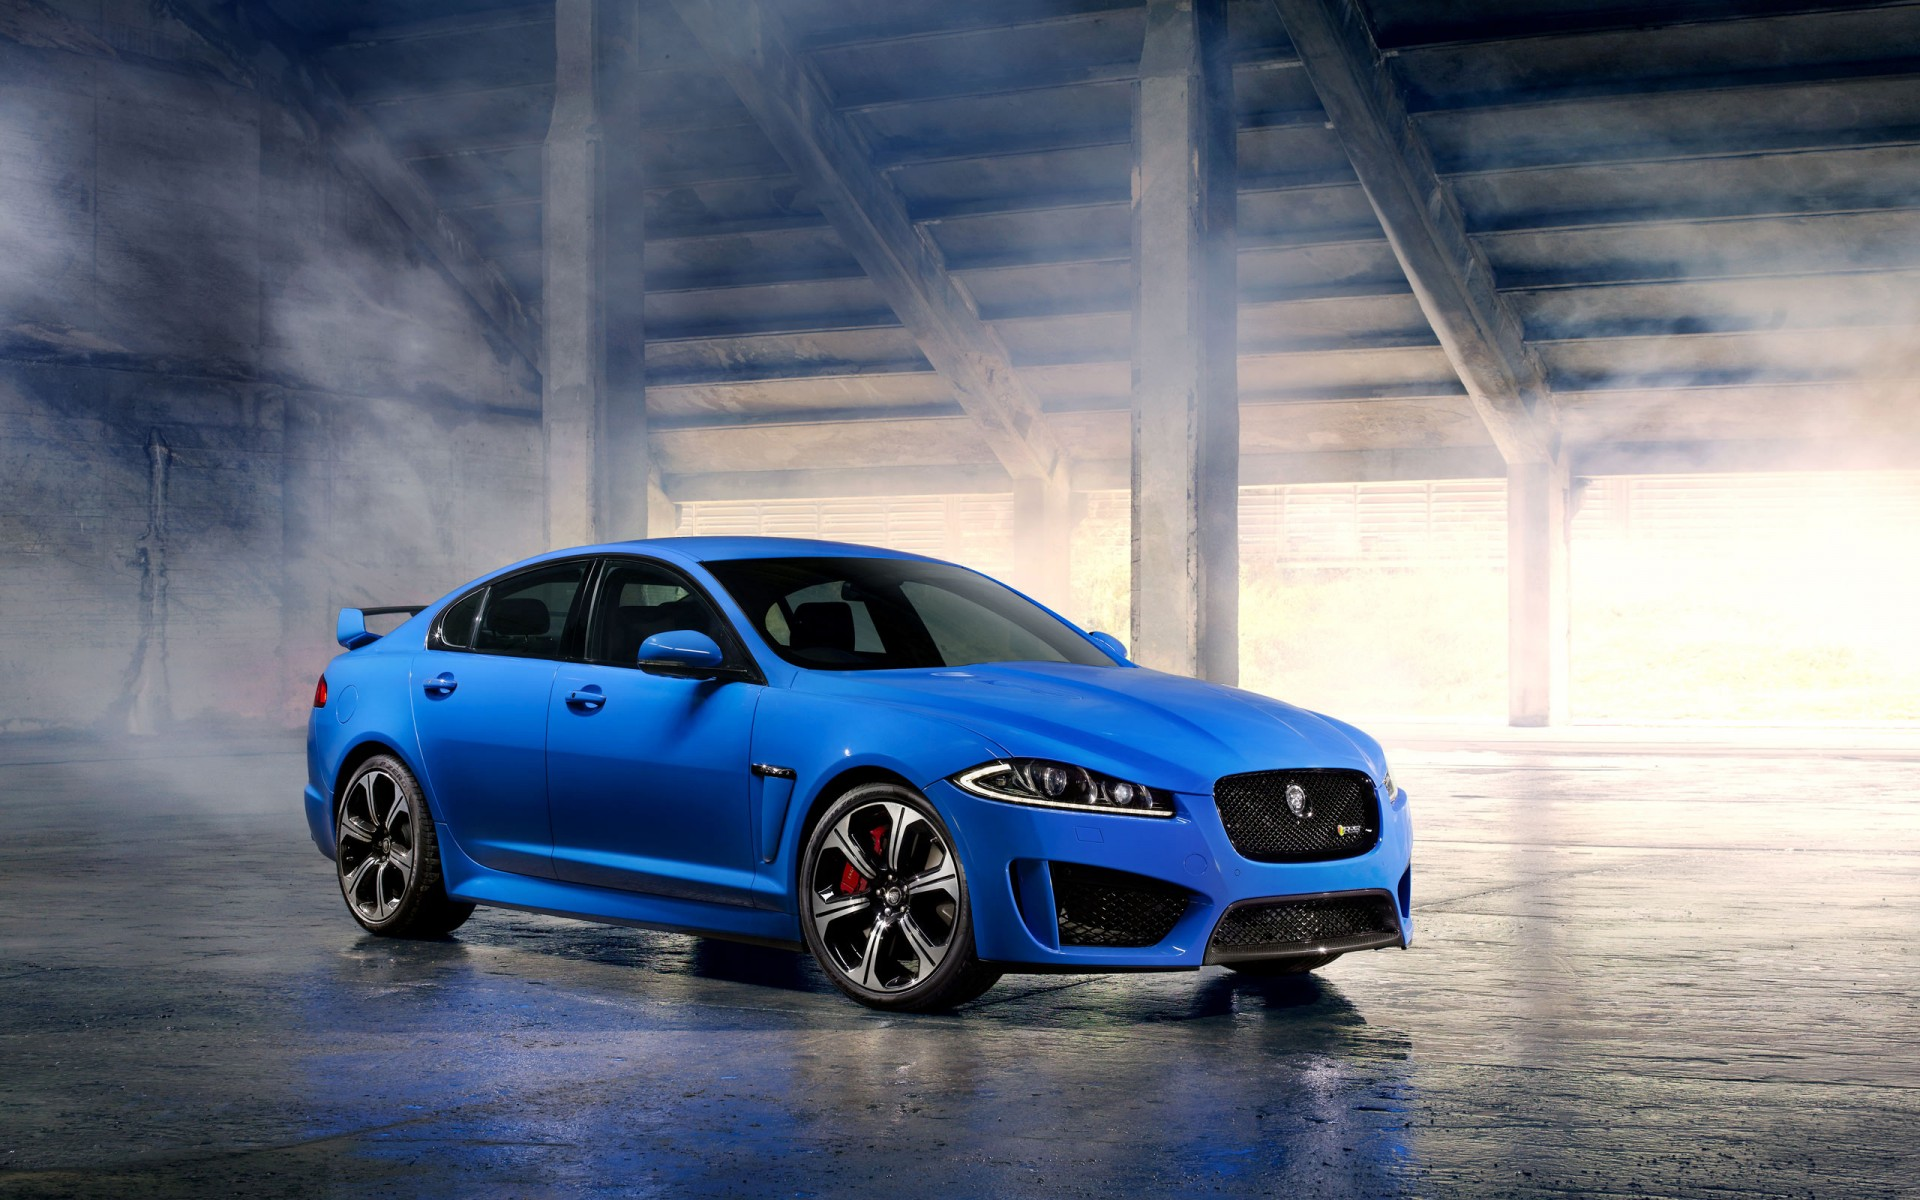 Here's an up close look at all the. 2014 Jaguar XFR S Wallpaper | HD Car Wallpapers | ID #3181